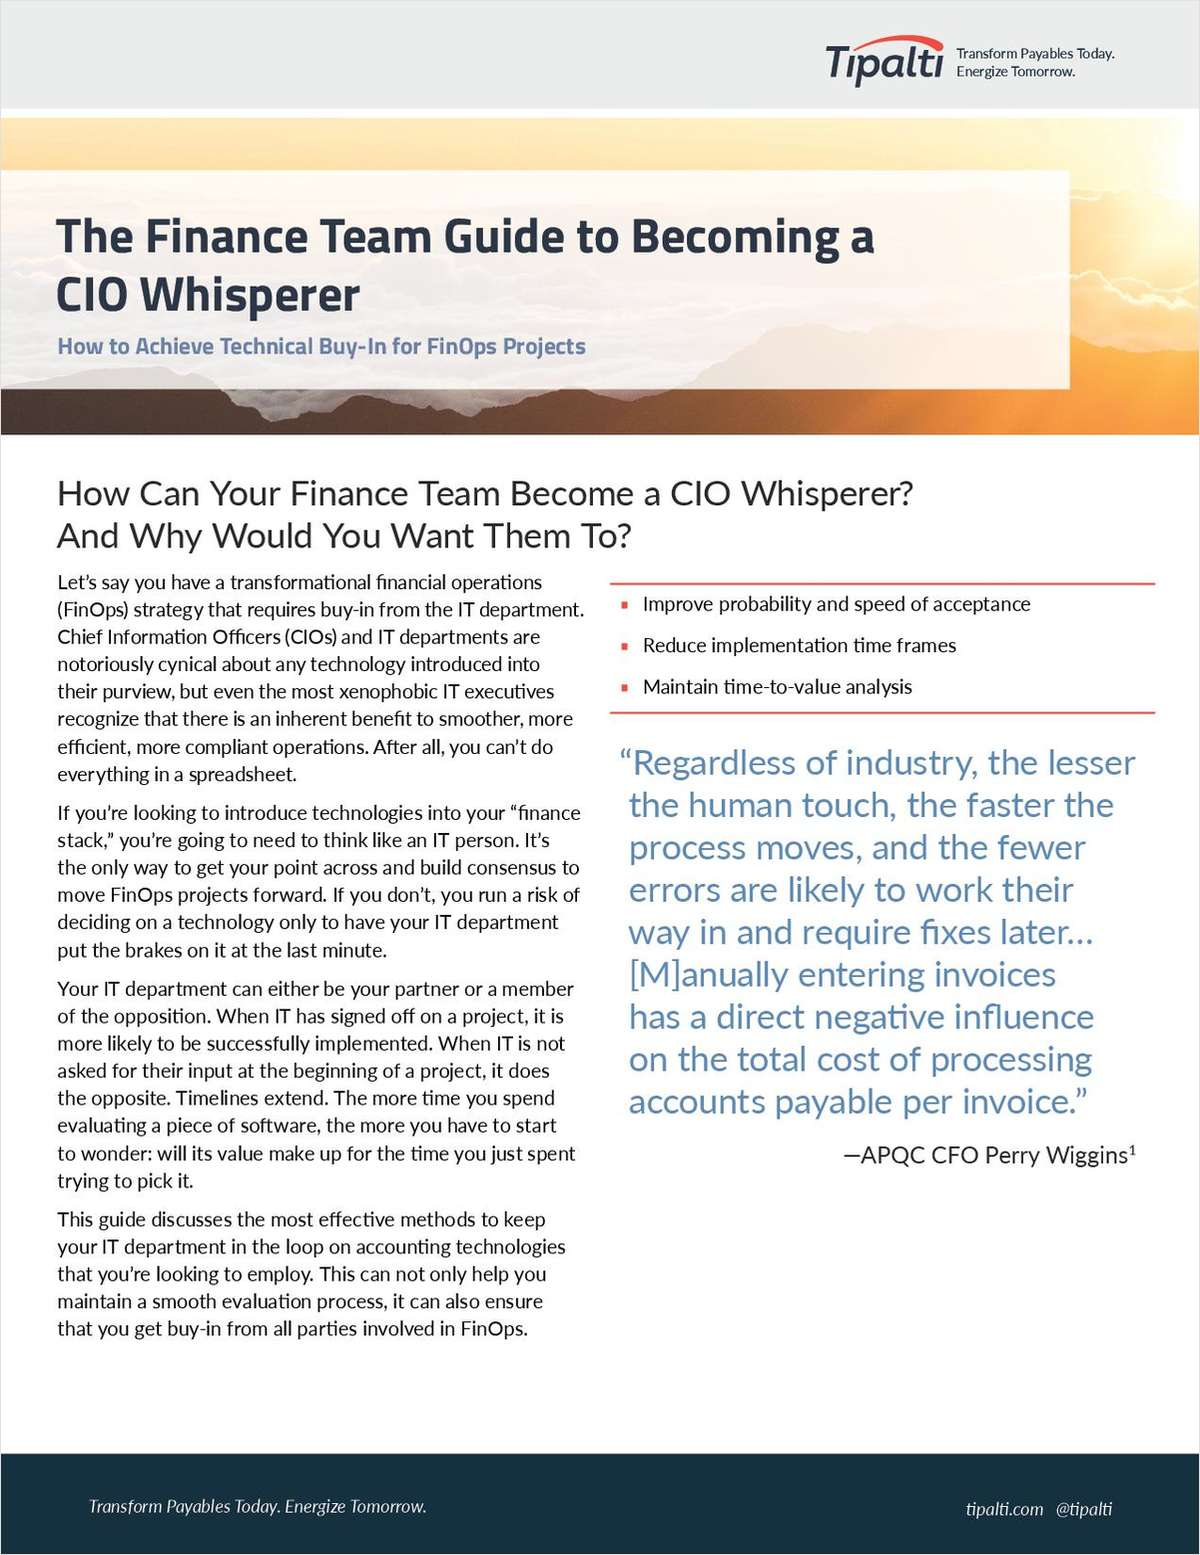 The Finance Team Guide to Becoming a CIO Whisperer